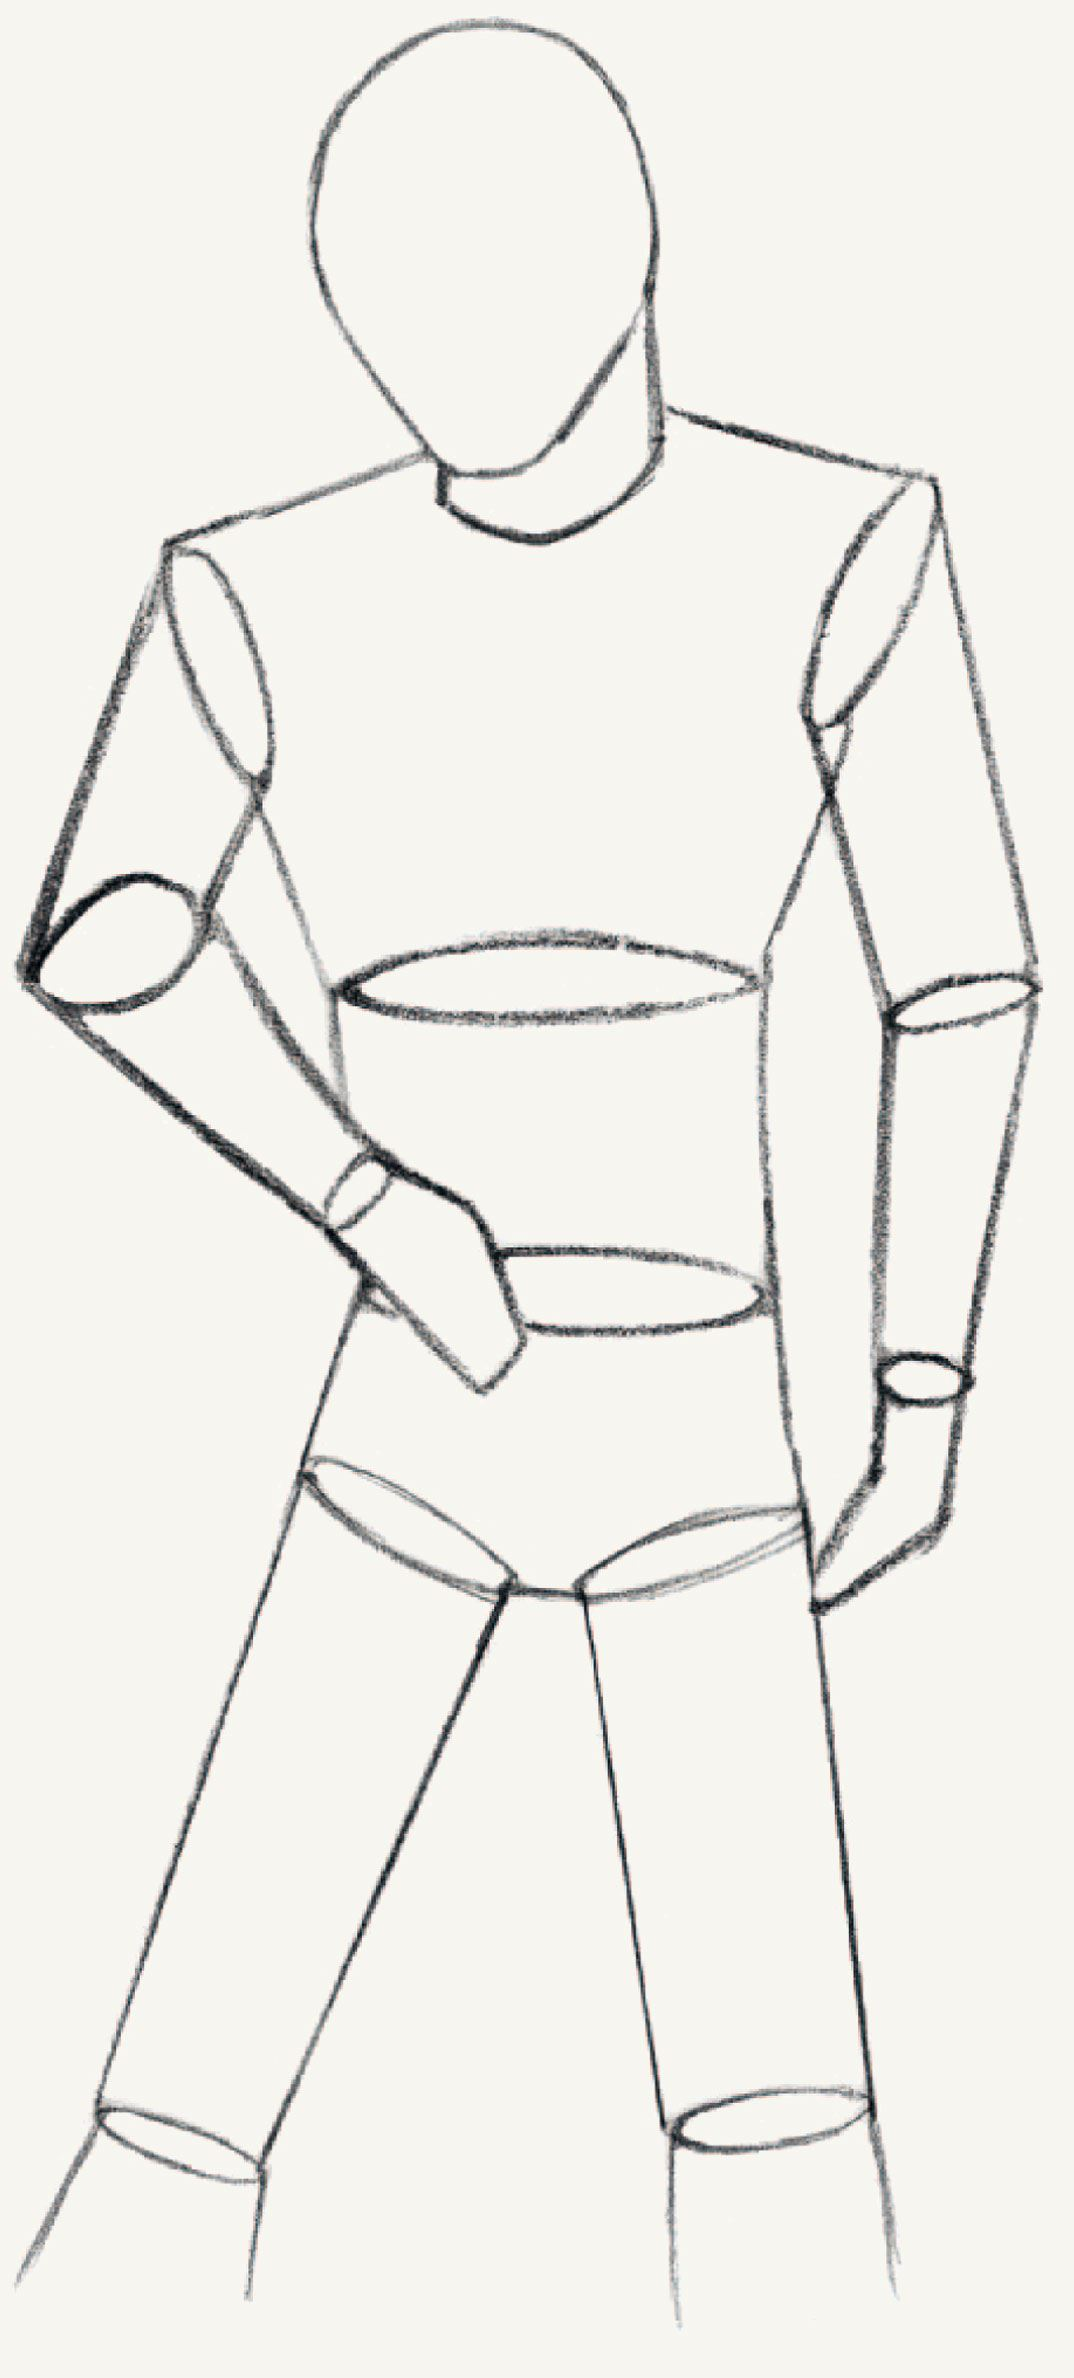 Now give your college boy a little more plasticity by means of basic geometrical shapes such as cylinders when doing this make sure you draw the